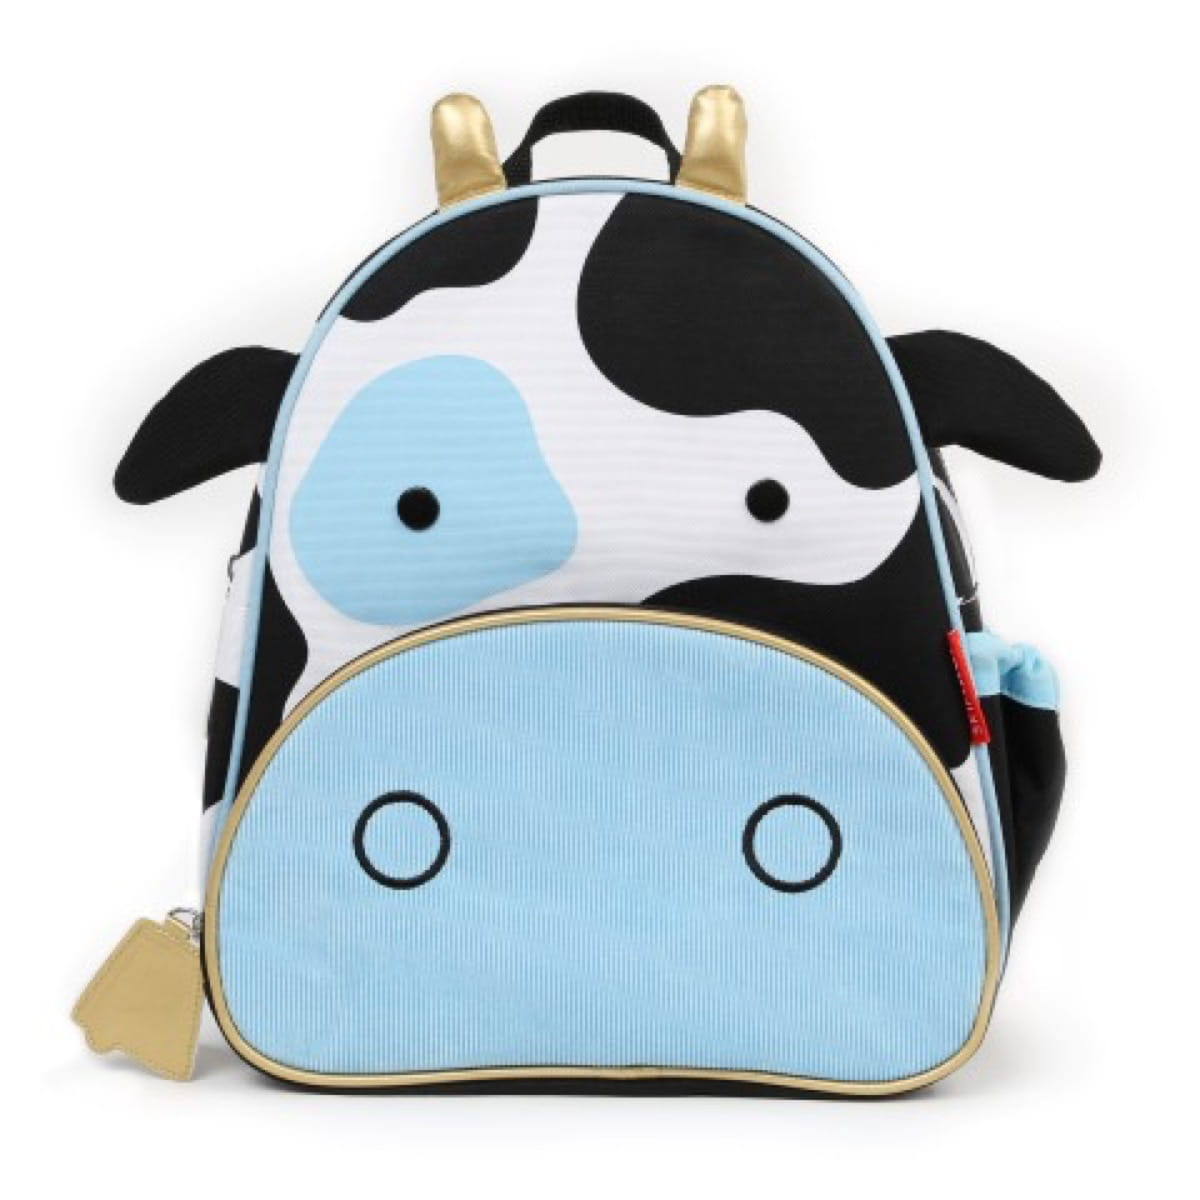 ZOO Pack Cow